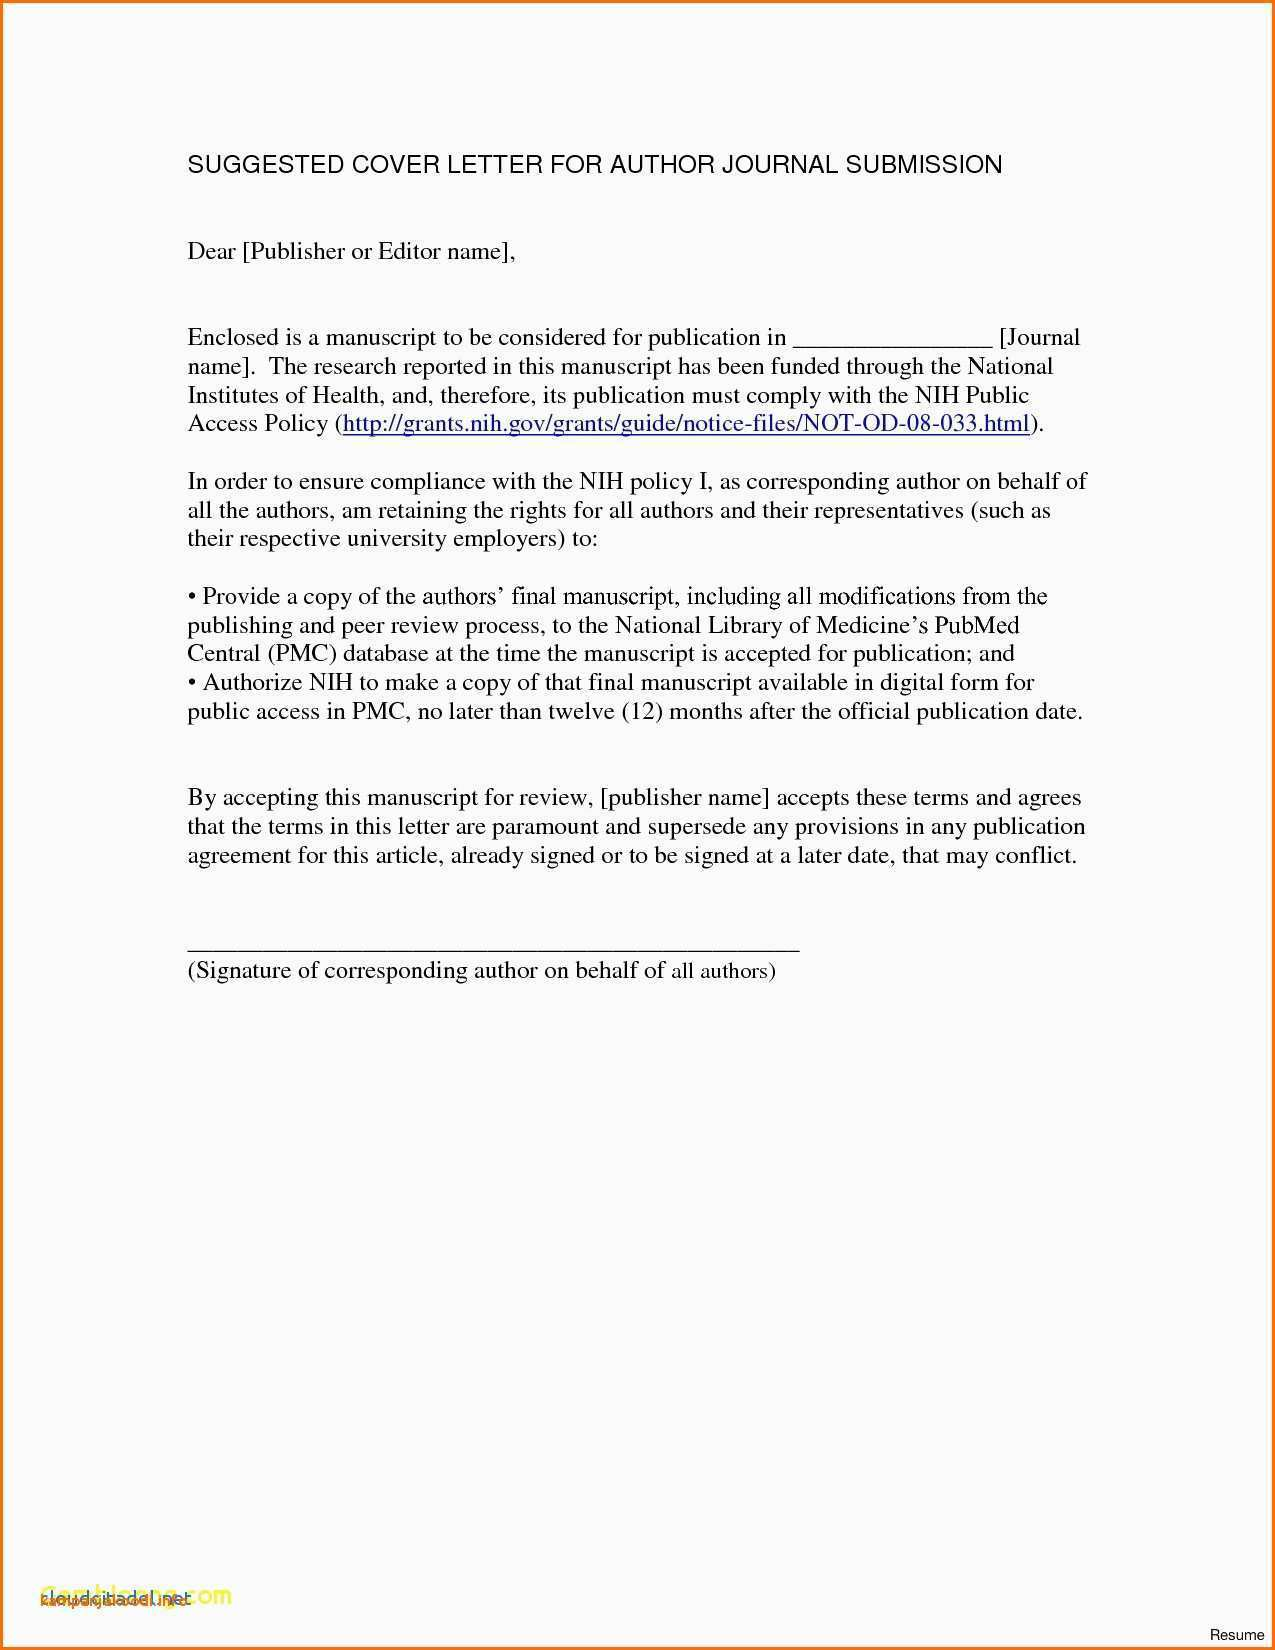 Relieving Letter Format Pdf Download Request Letter Template Download Luxury Relieving Letter Format For